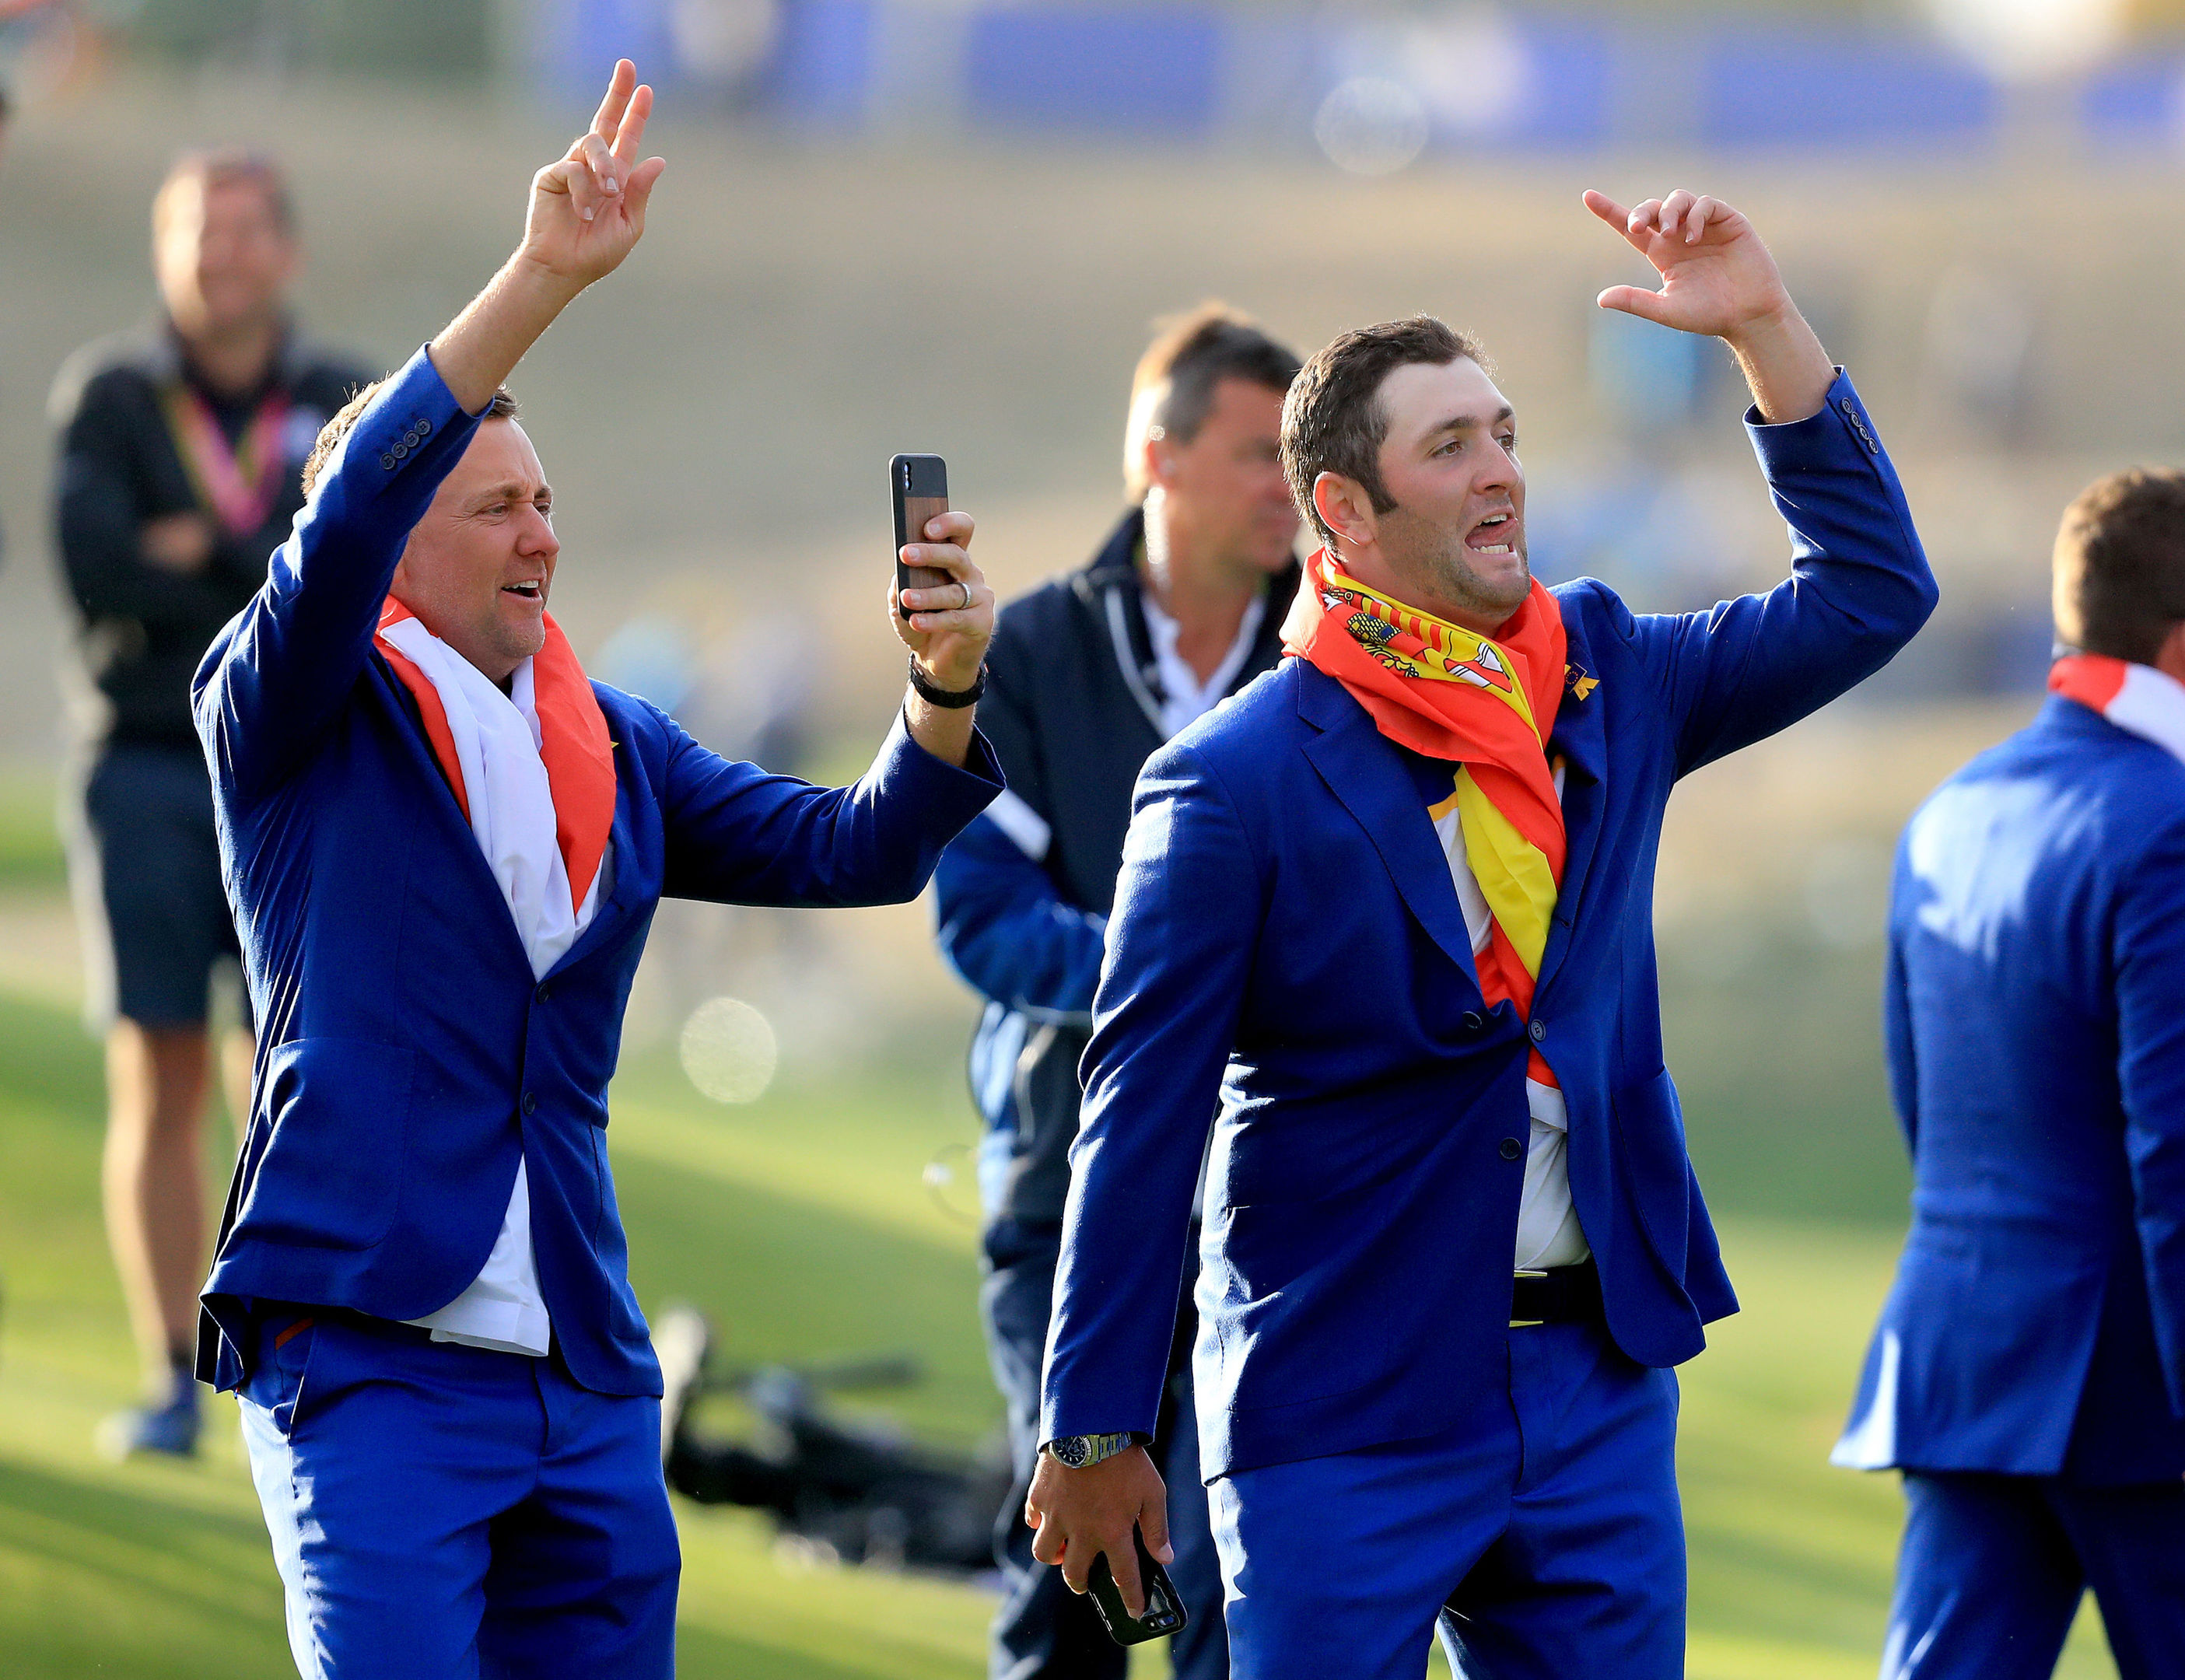 Team Europe's Ian Poulter (left) and Jon Rahm.